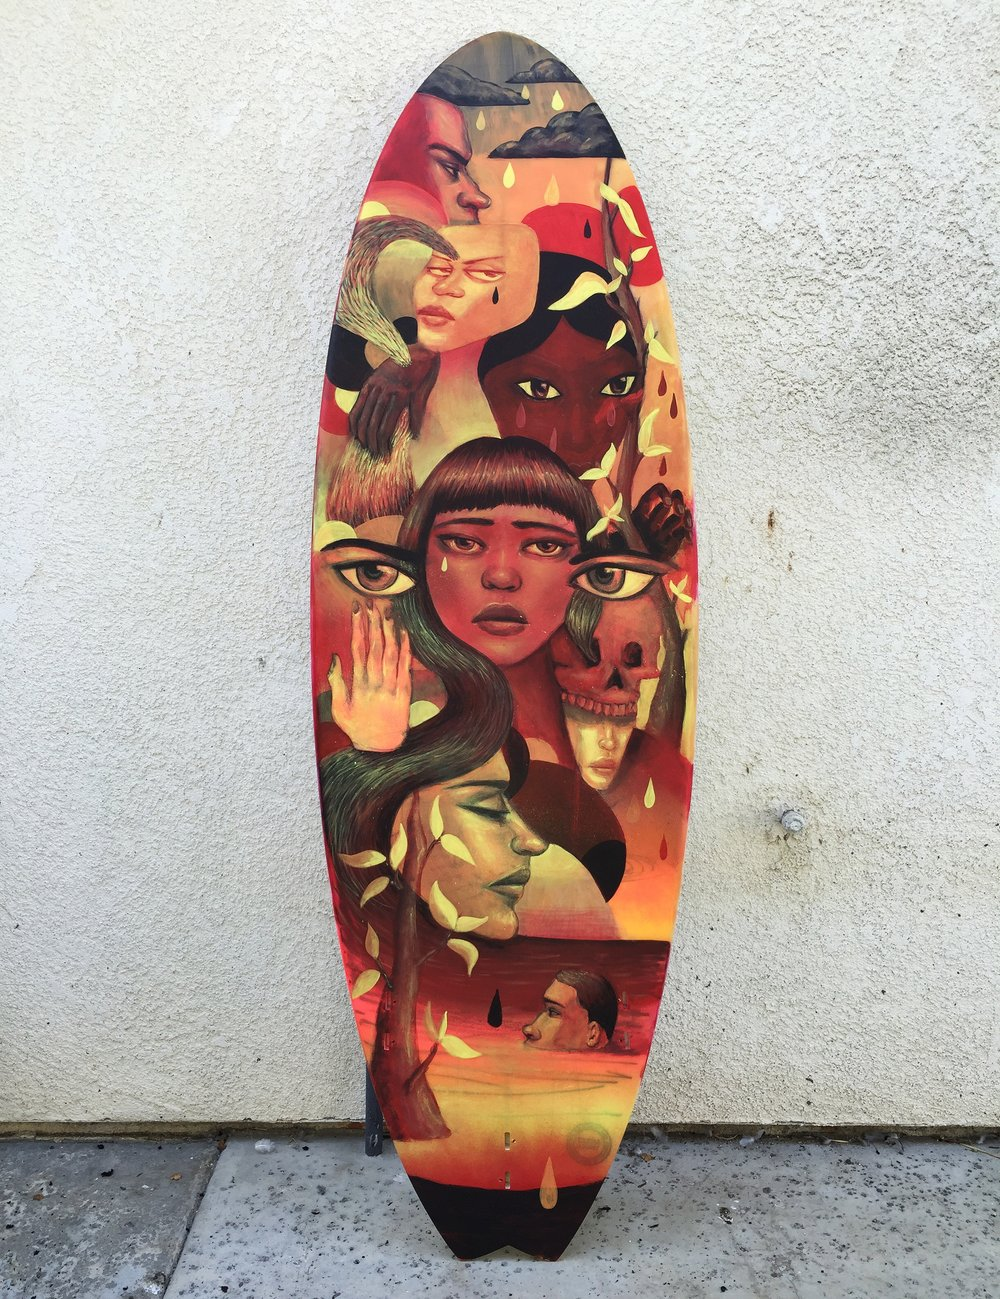 Acrylic and Spraypaint on Surfboard.